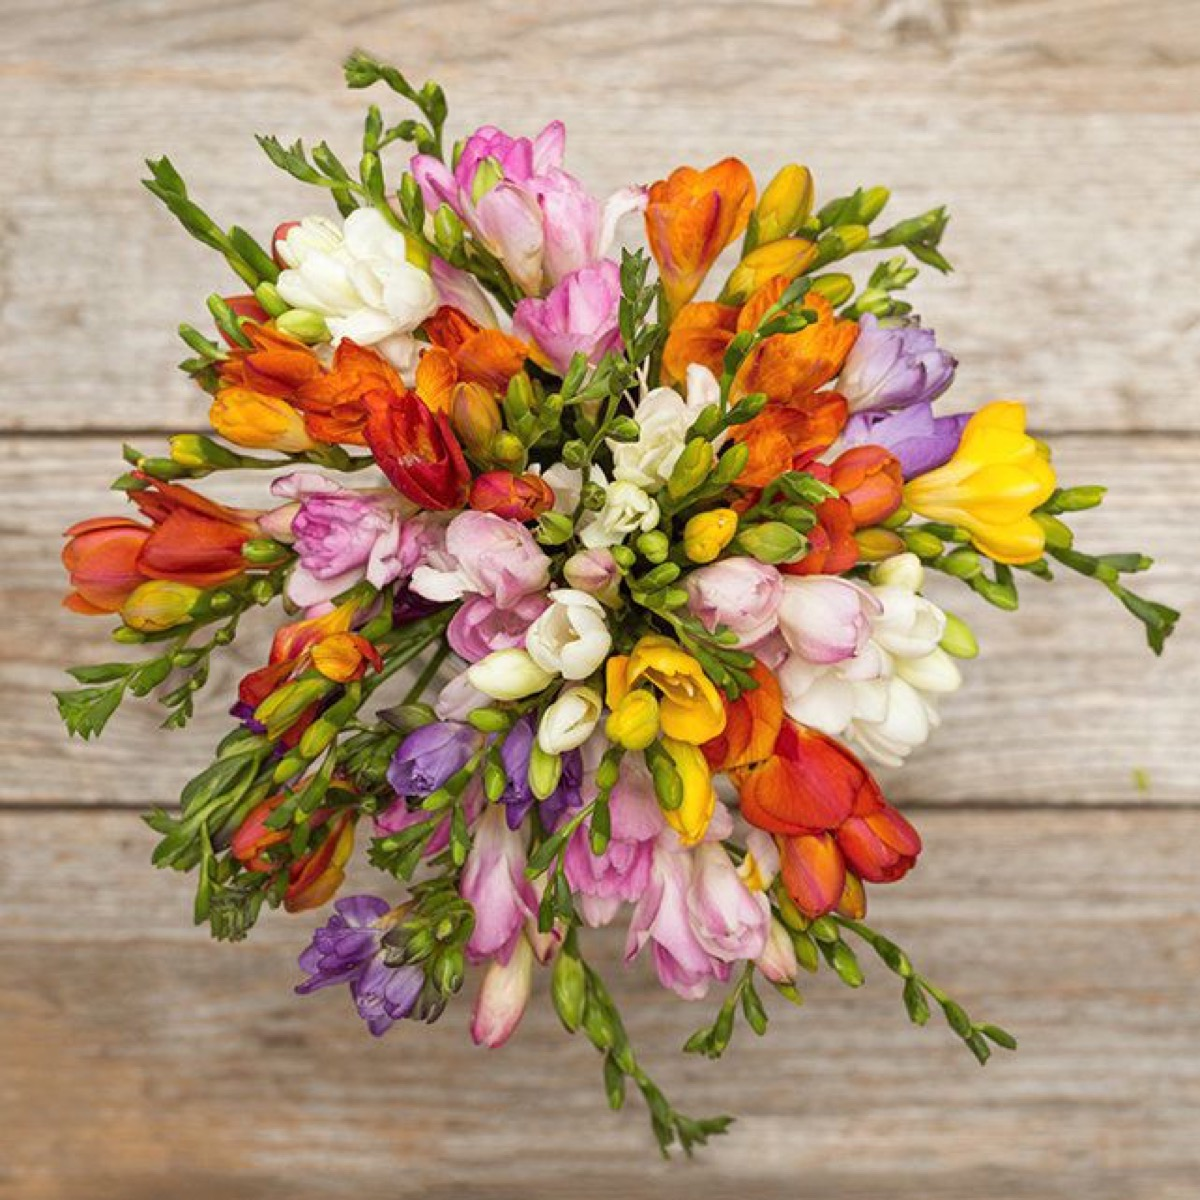 floral bouquet on wooden table